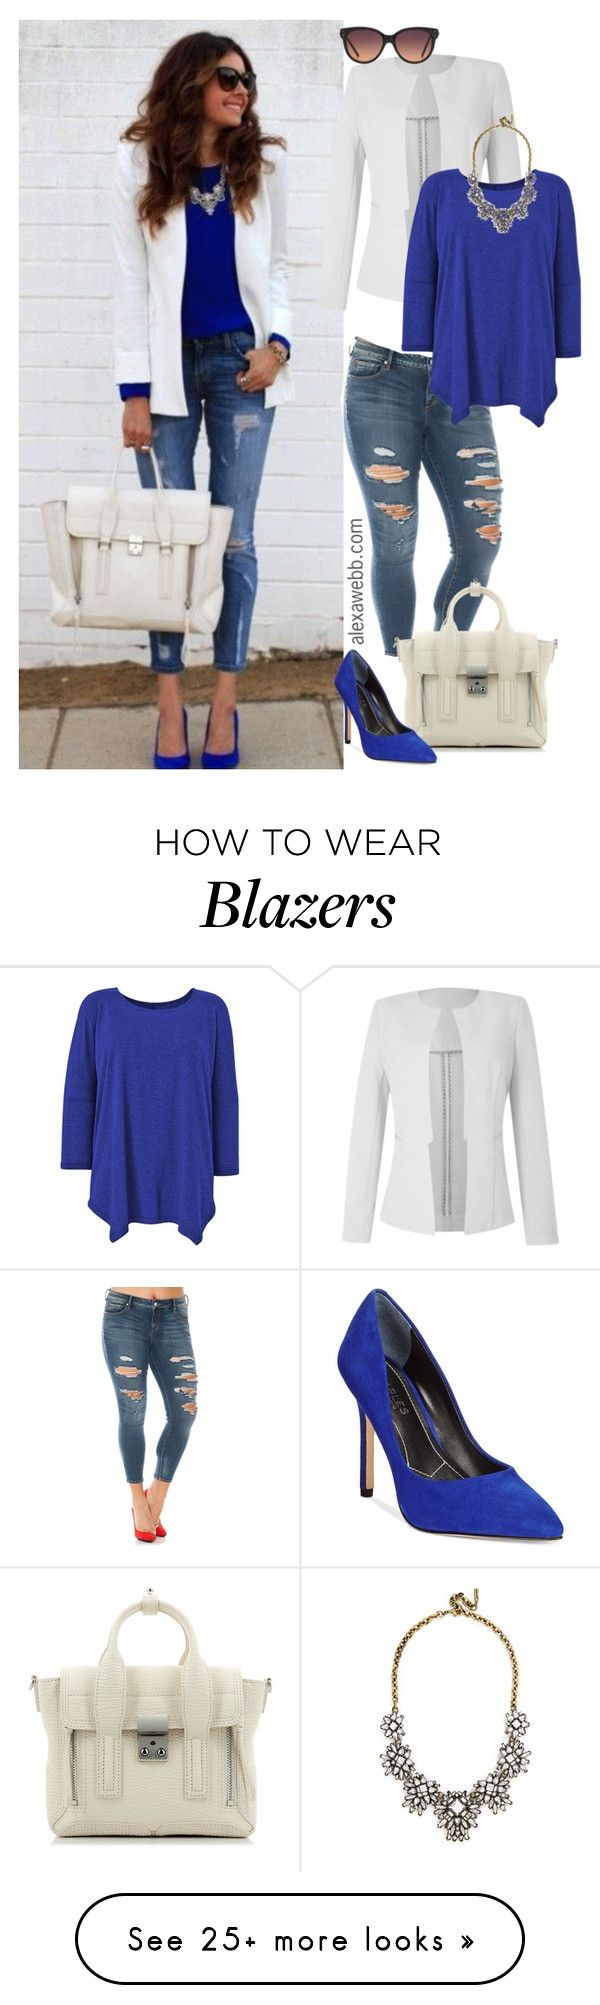 """Straight Size to Plus Size - White Blazer / Cobalt"" by alexawebb on Polyvore featuring Slink Jeans, 3.1 Phillip Lim, Charles by Charles David, BaubleBar, MANGO, plussize, plussizefashion, alexawebb and plus size clothing"